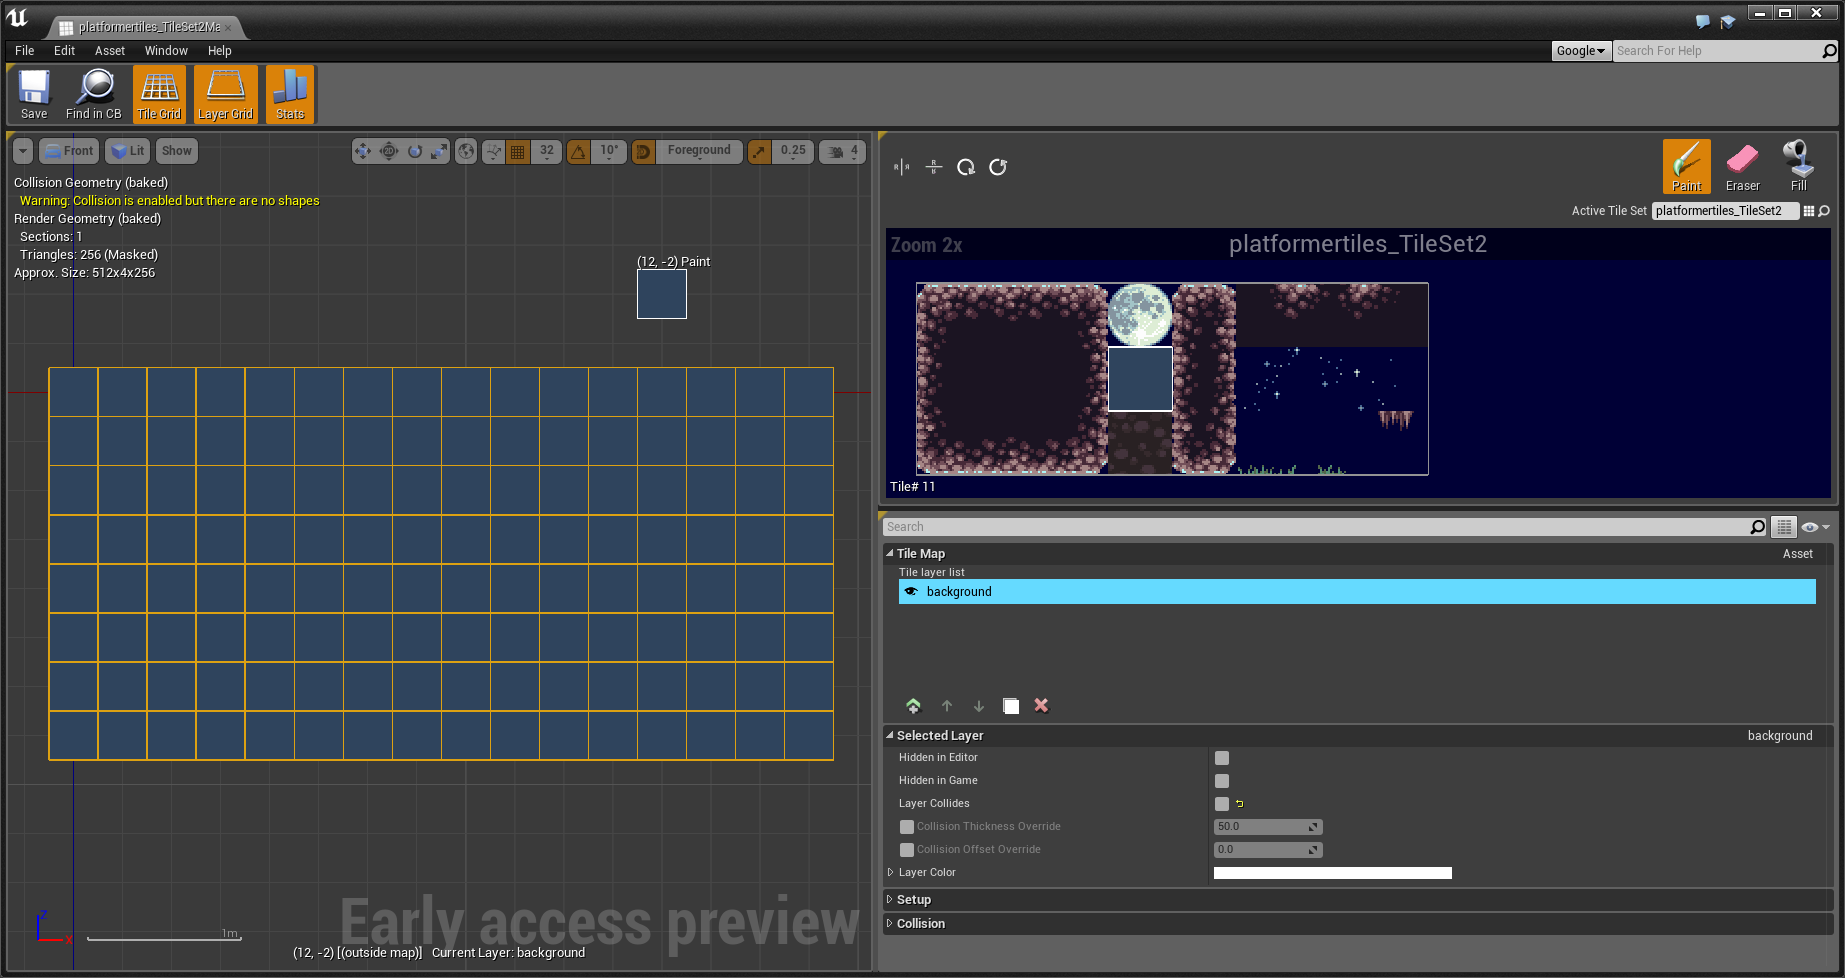 Unreal Engine 4: TileSets and TileMaps! - Saucy se